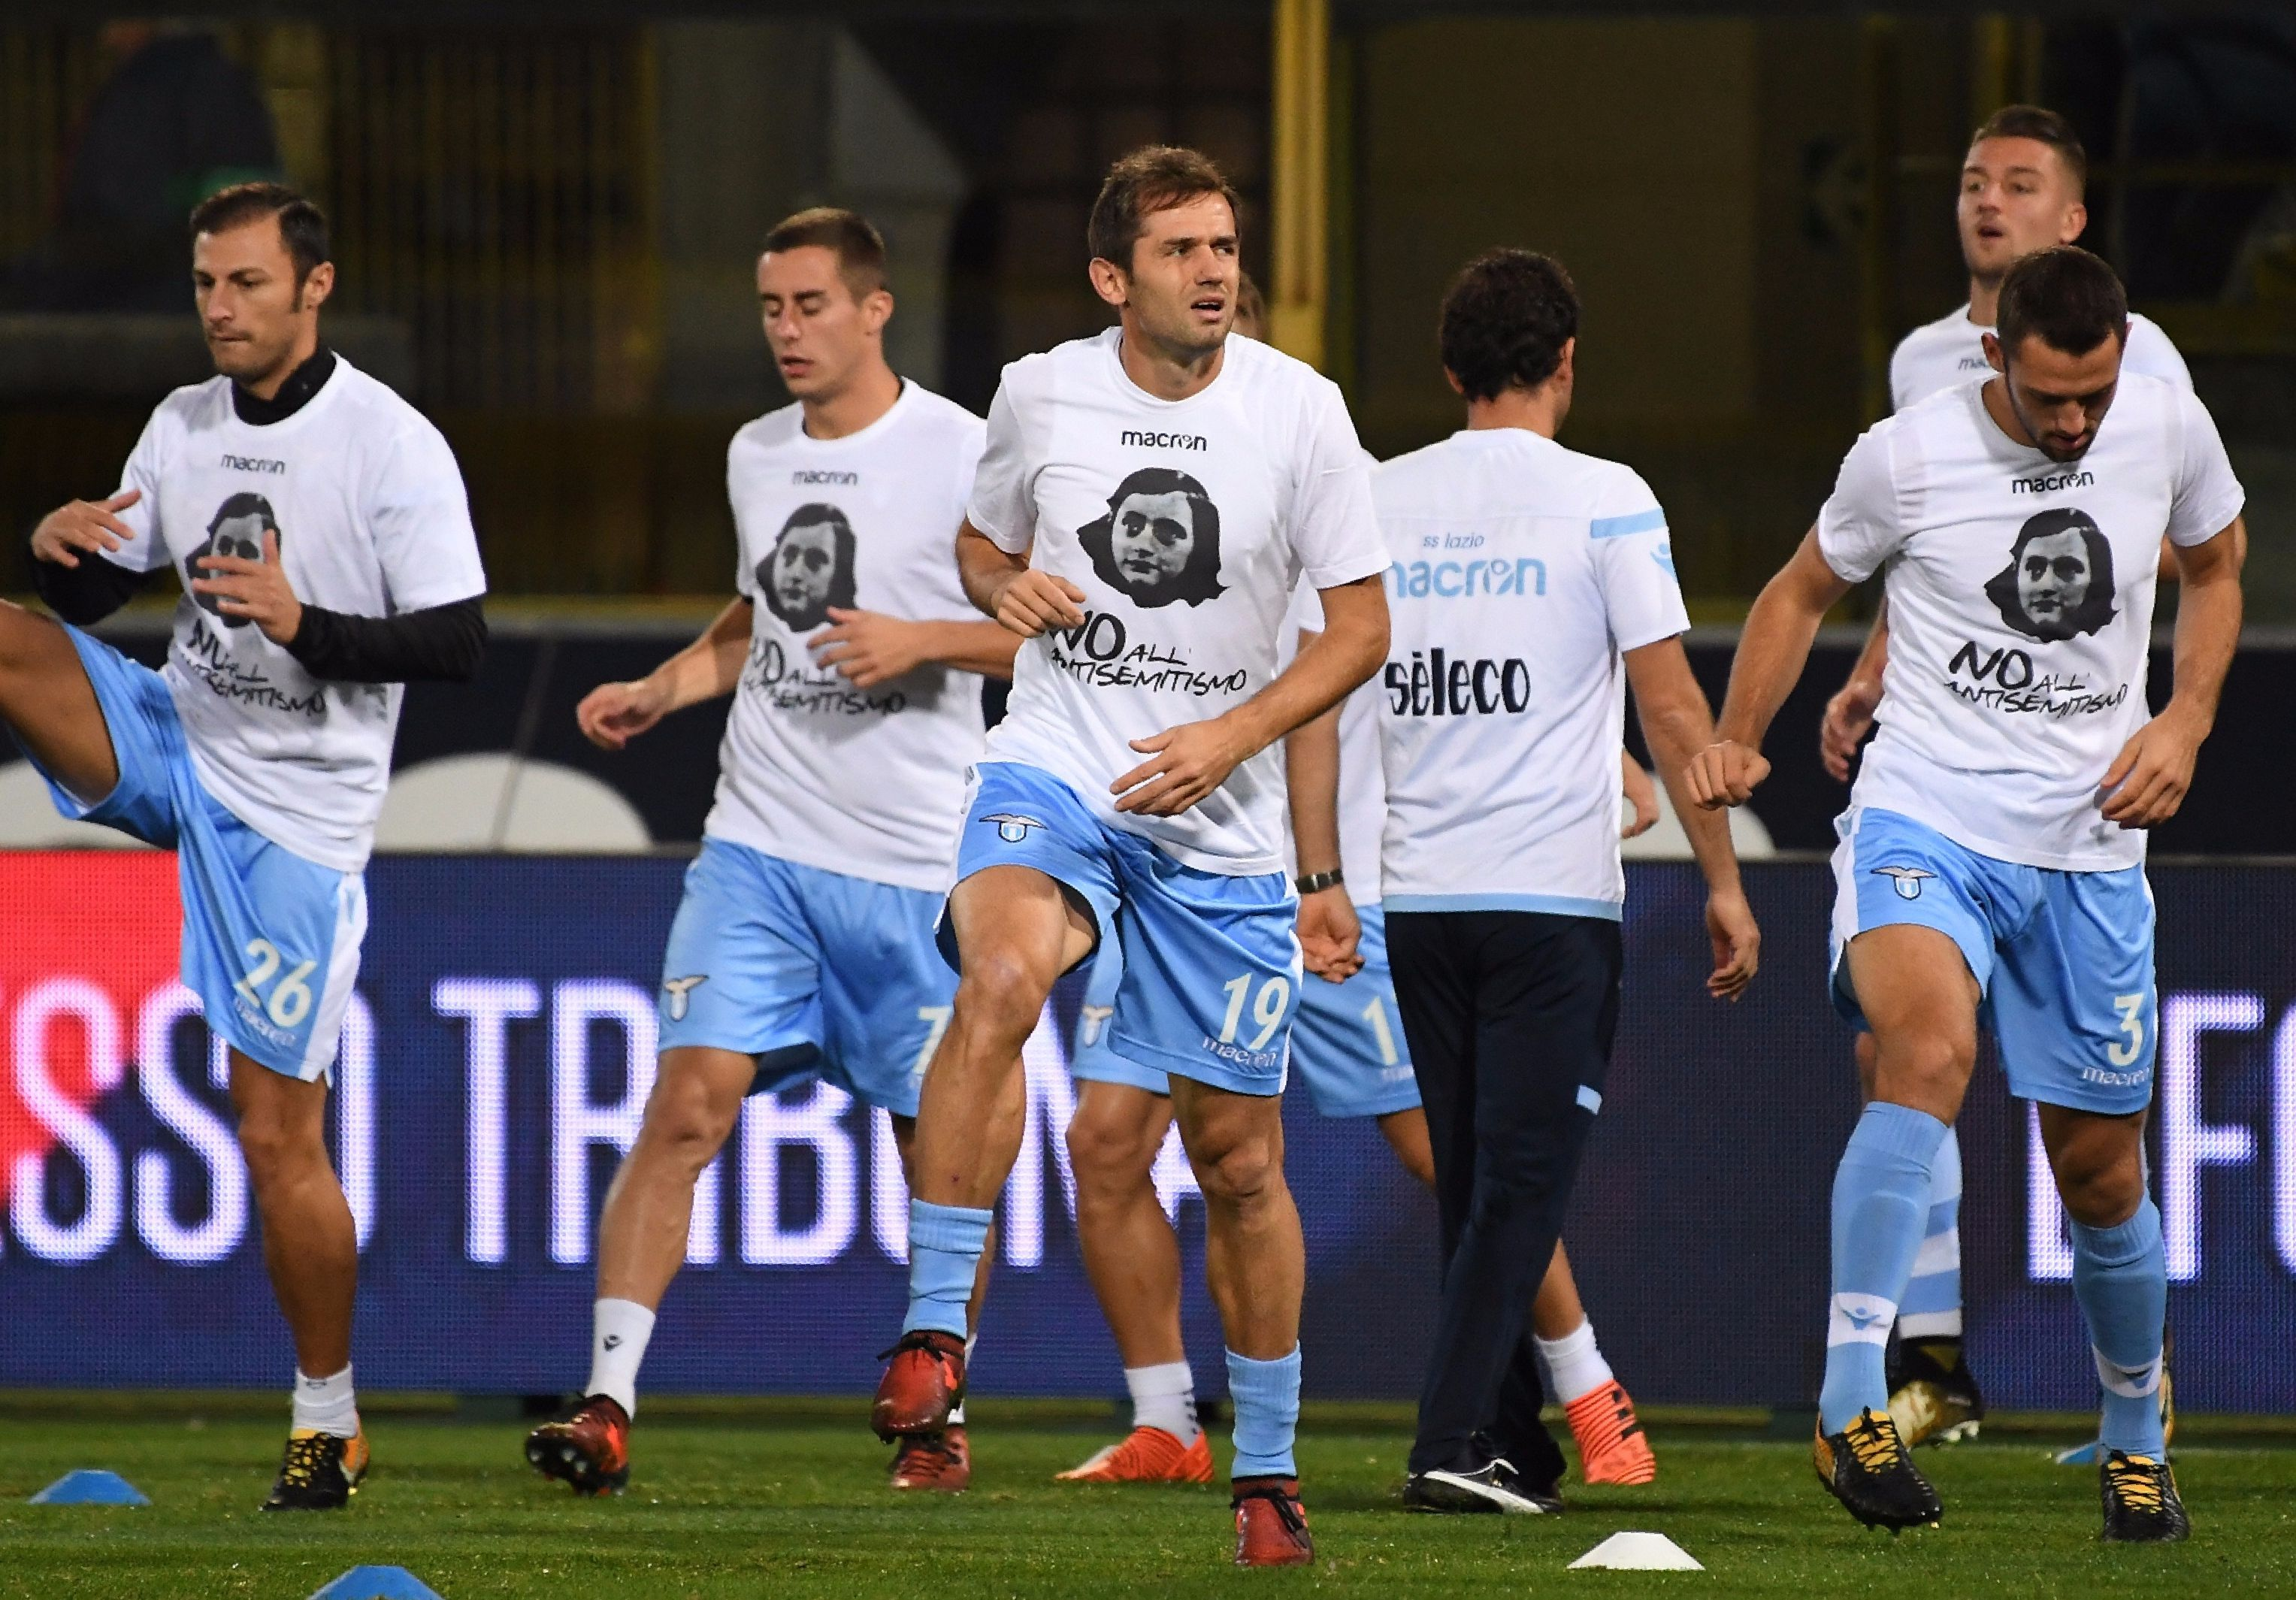 Police identify 20 Lazio fans who put up Anne Frank images